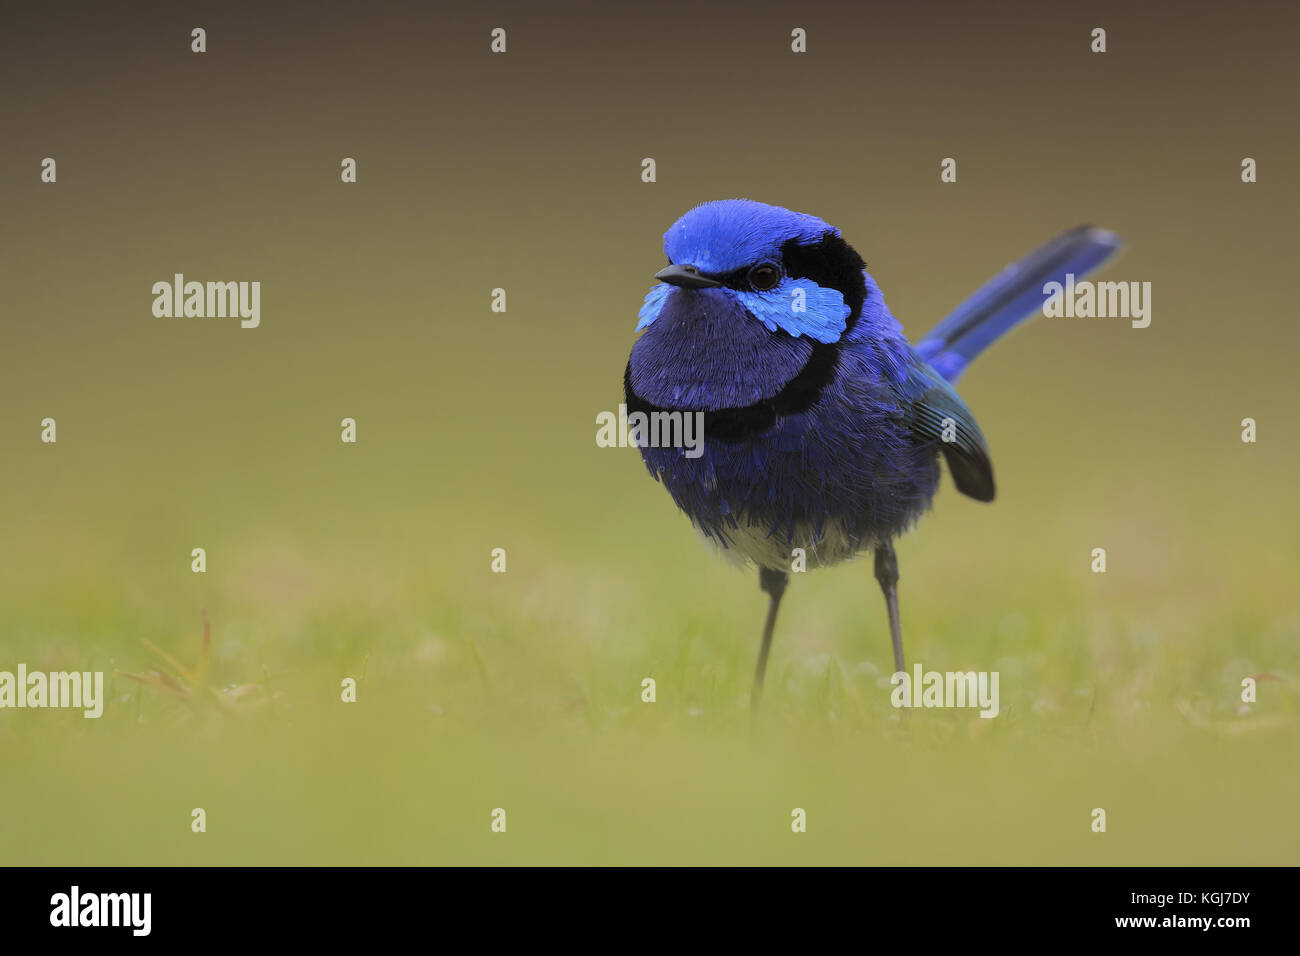 Splendid Fairy-wren - Stock Image